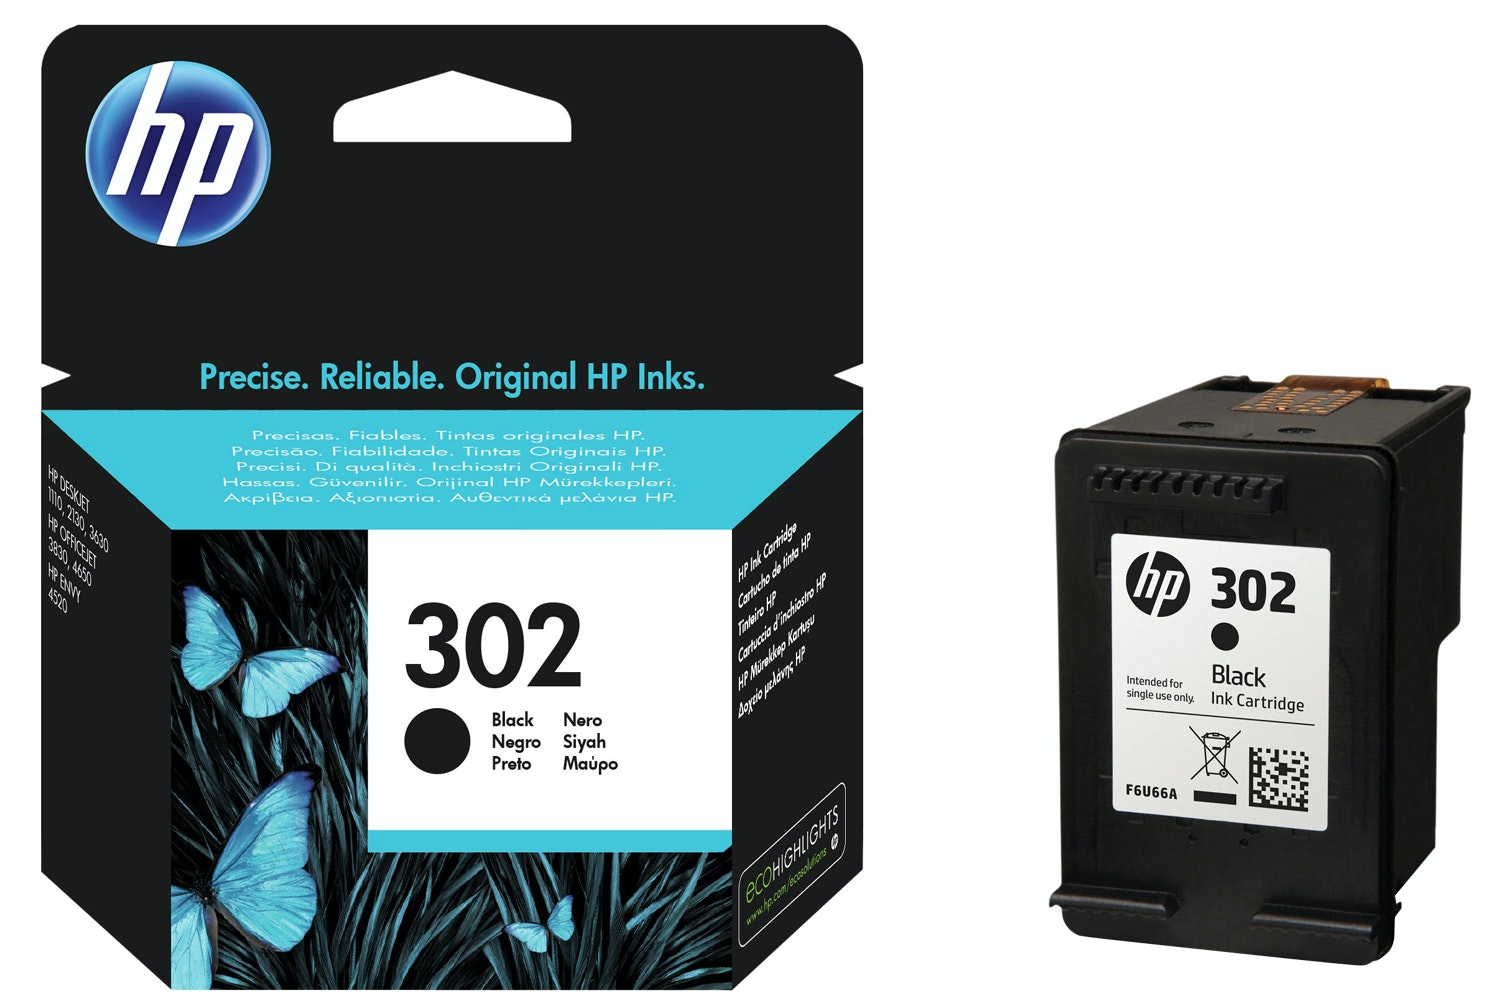 HP 302 Black Ink